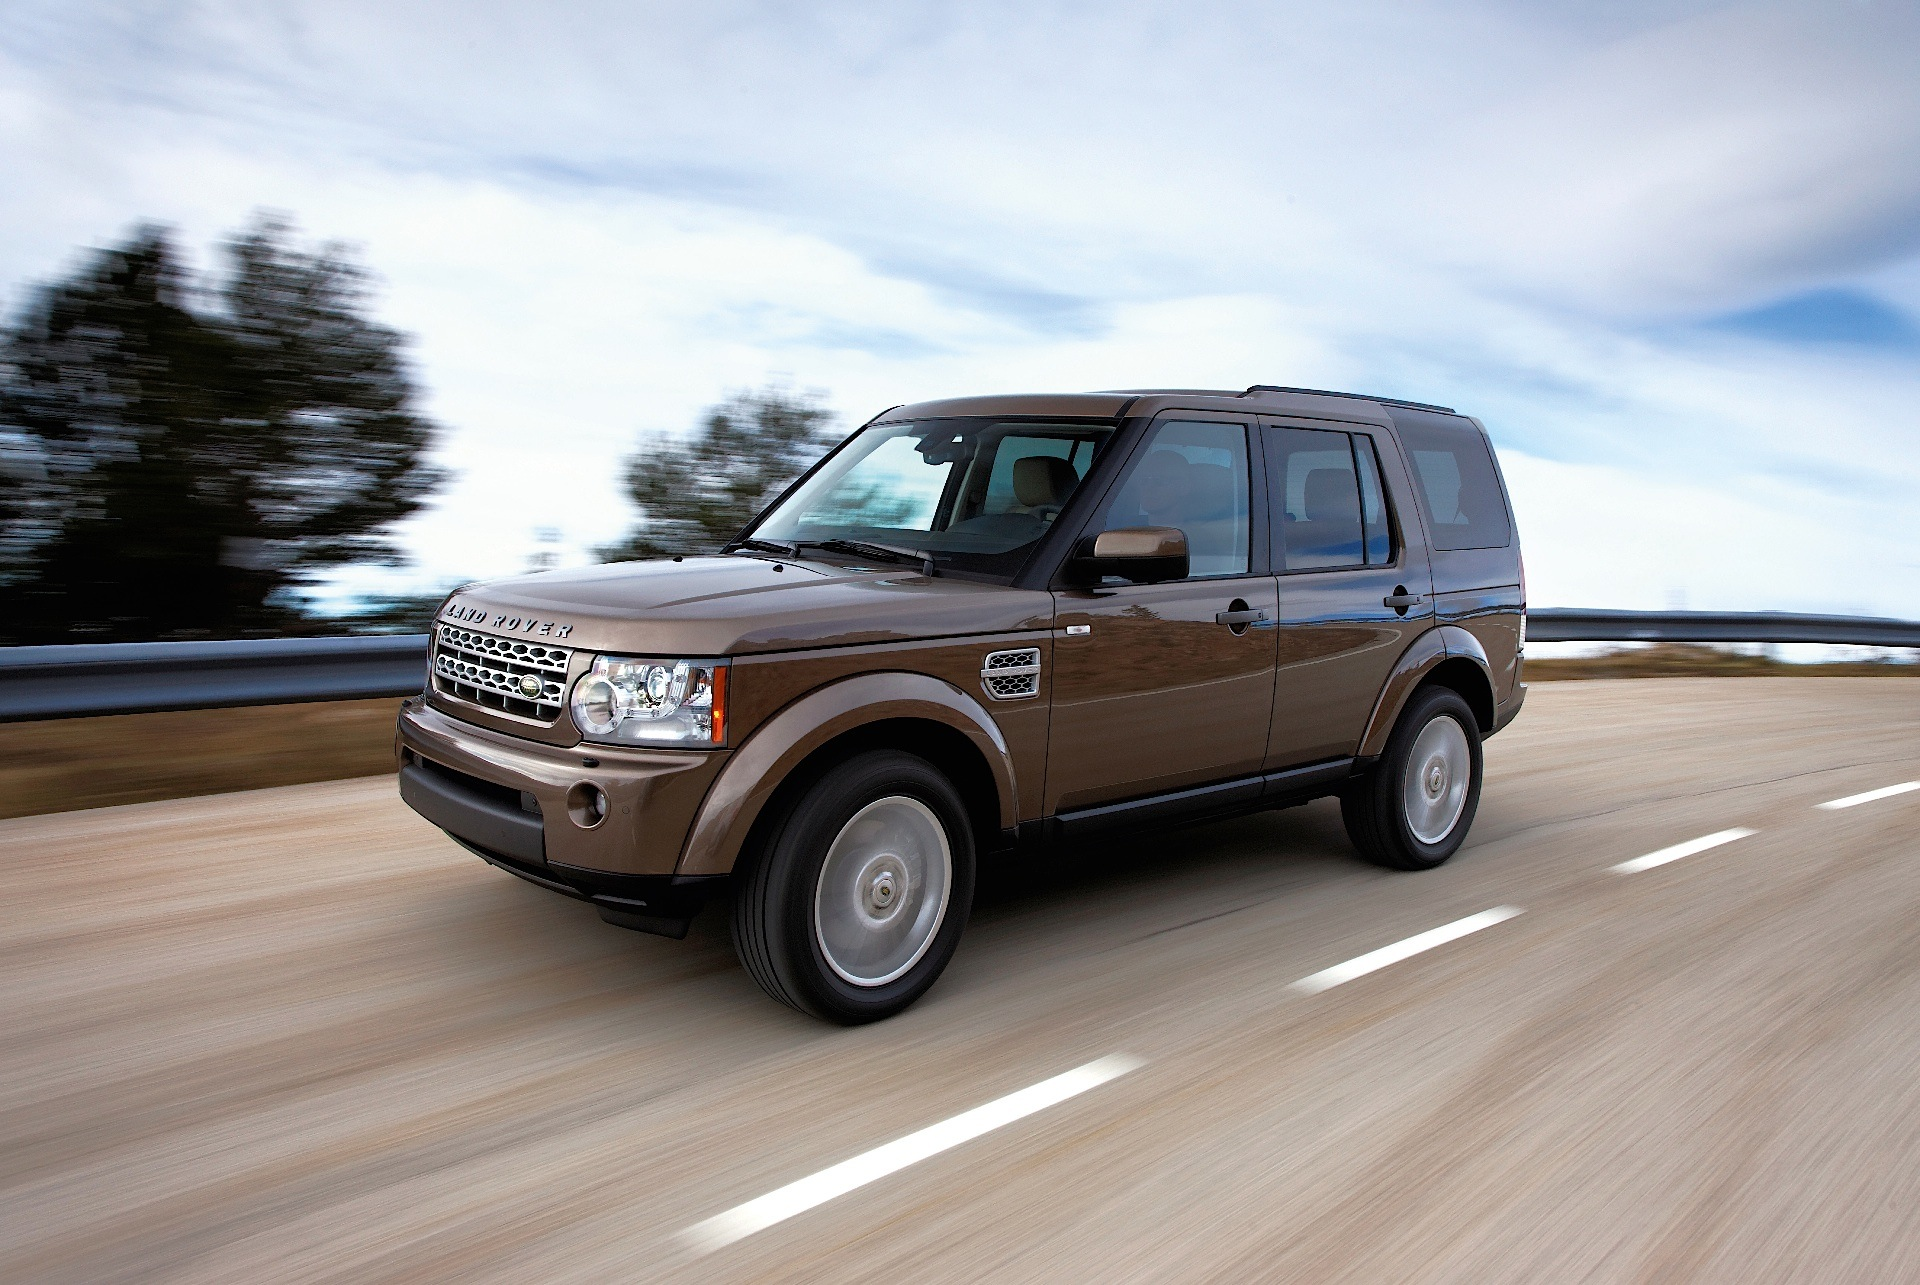 land rover discovery lr4 specs photos 2009 2010 2011 2012 2013 autoevolution. Black Bedroom Furniture Sets. Home Design Ideas